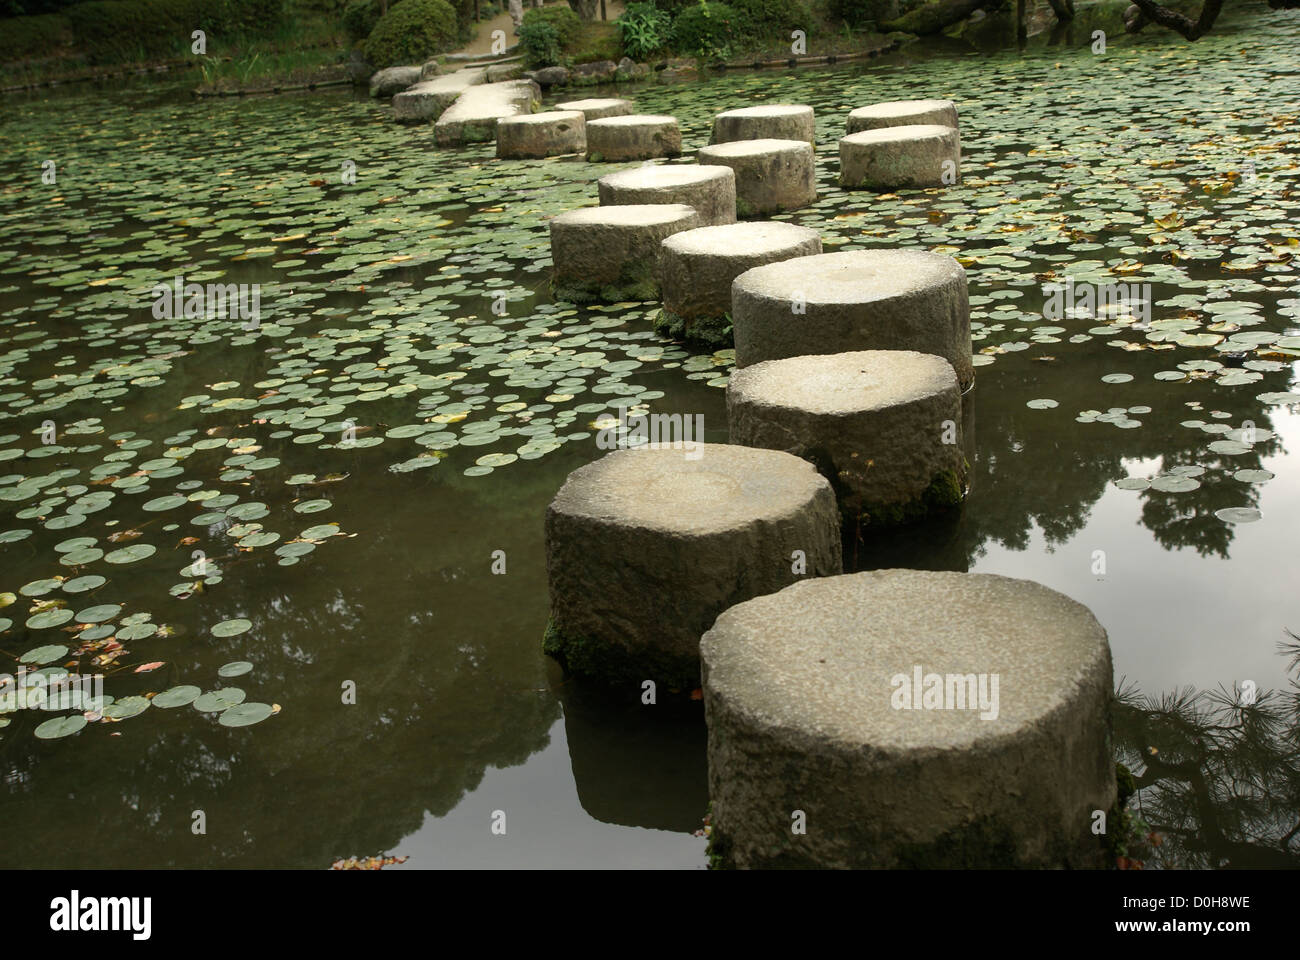 Stepping stones over a water lily pond in a zen garden at for Garden pool zen area